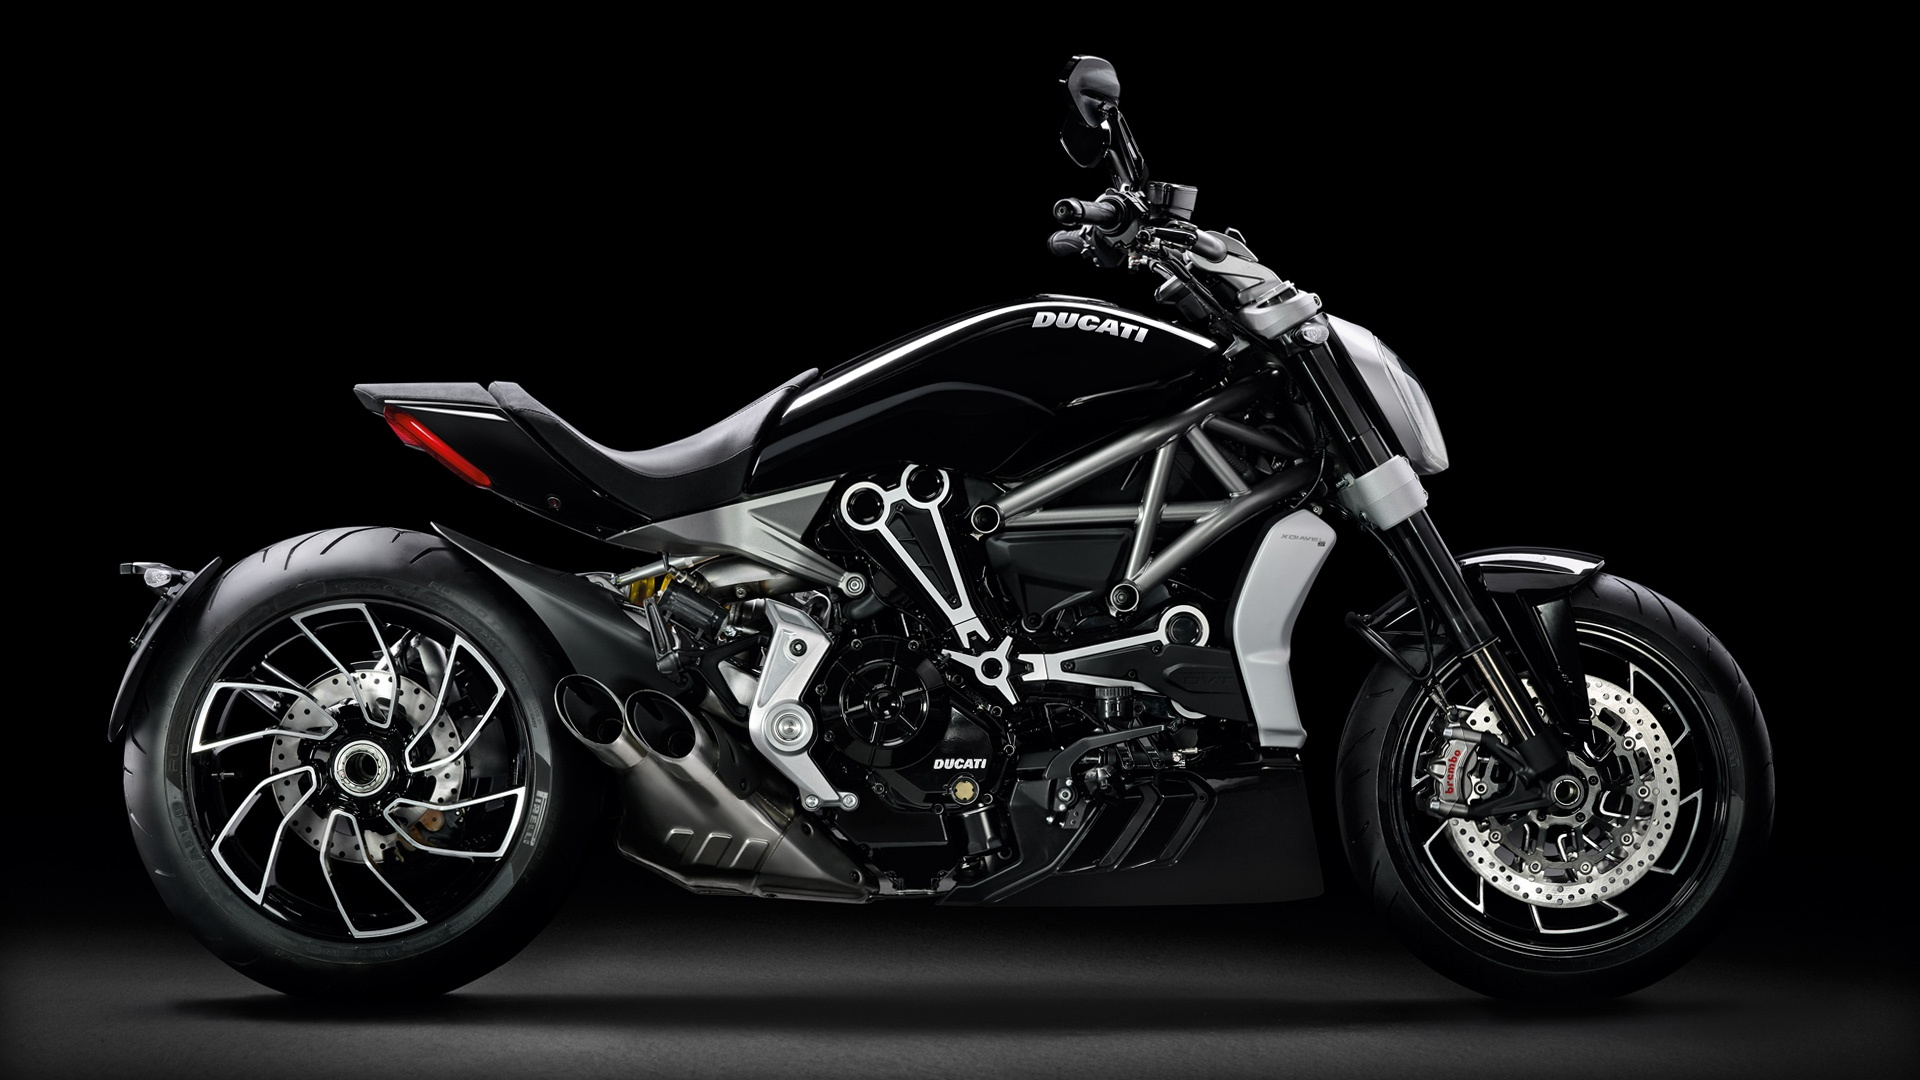 2017 Ducati XDiavel S for sale at Ducati Stoke, Staffordshire, Scotland